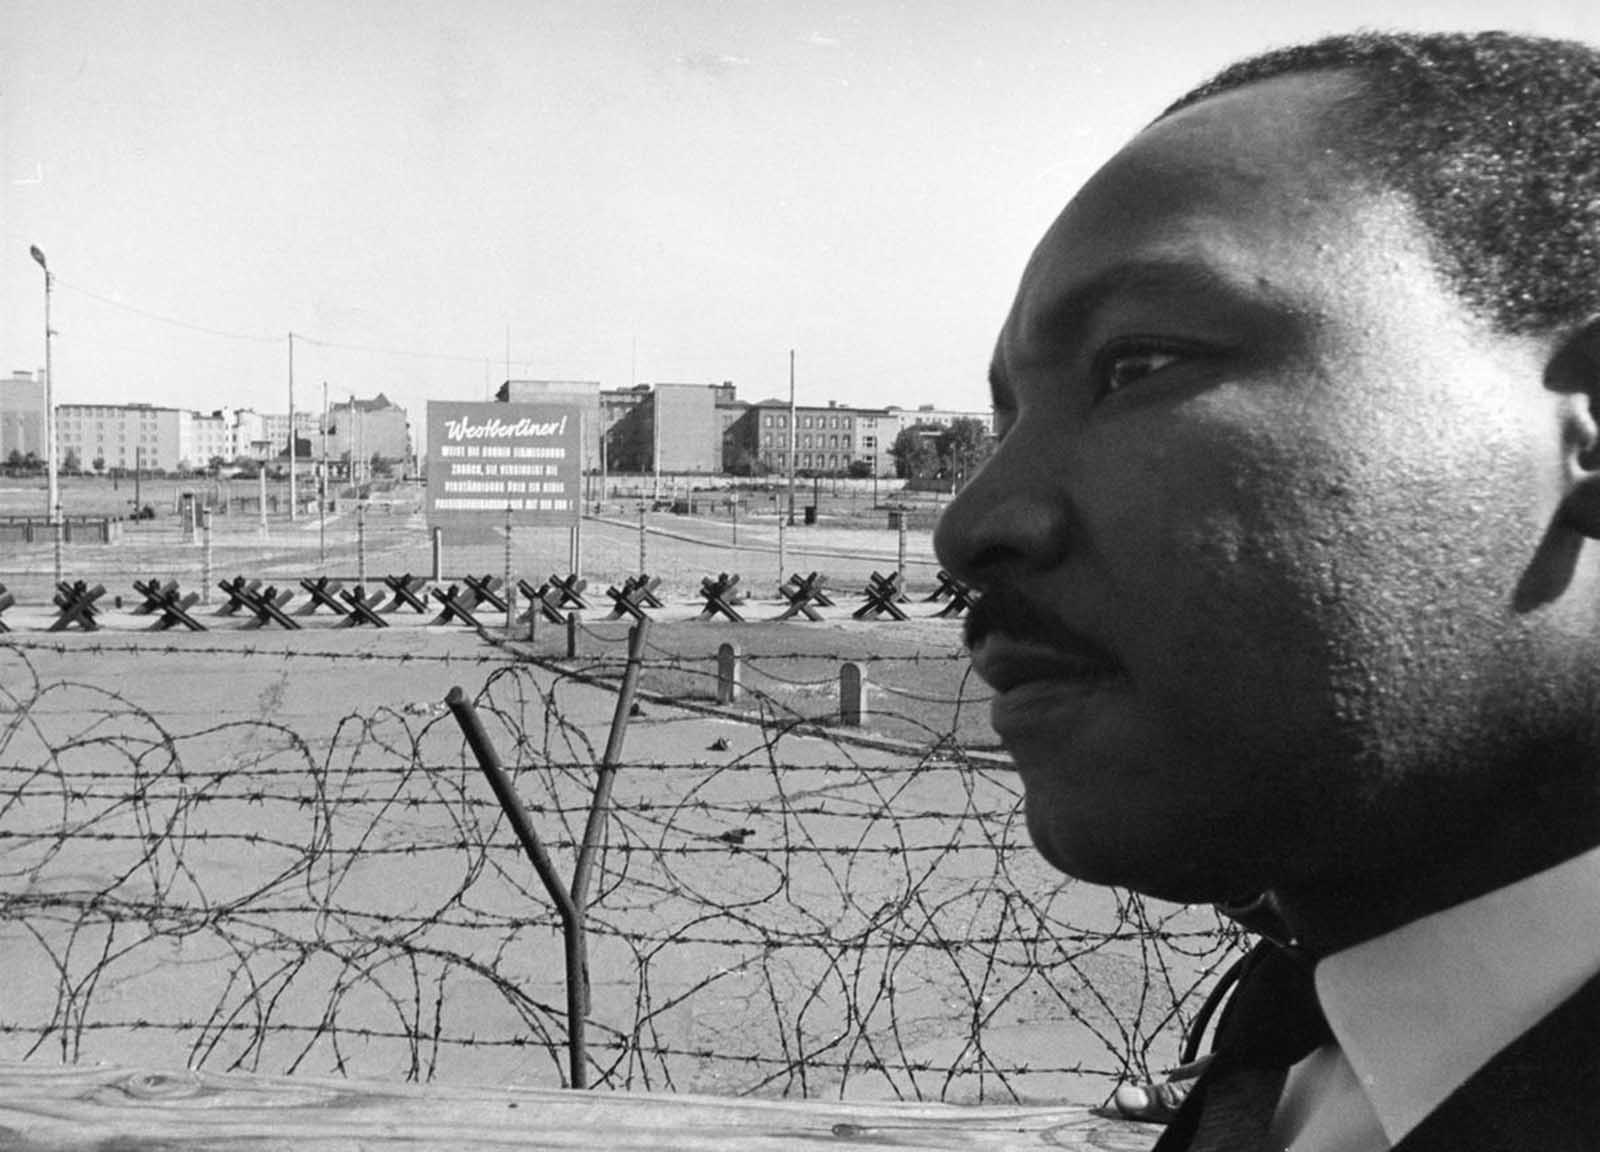 Reverend Martin Luther King, American civil rights leader, invited to Berlin by West Berlin Mayor Willy Brandt, visits the wall on September 13, 1964, at the border Potsdamer Platz in West Berlin.